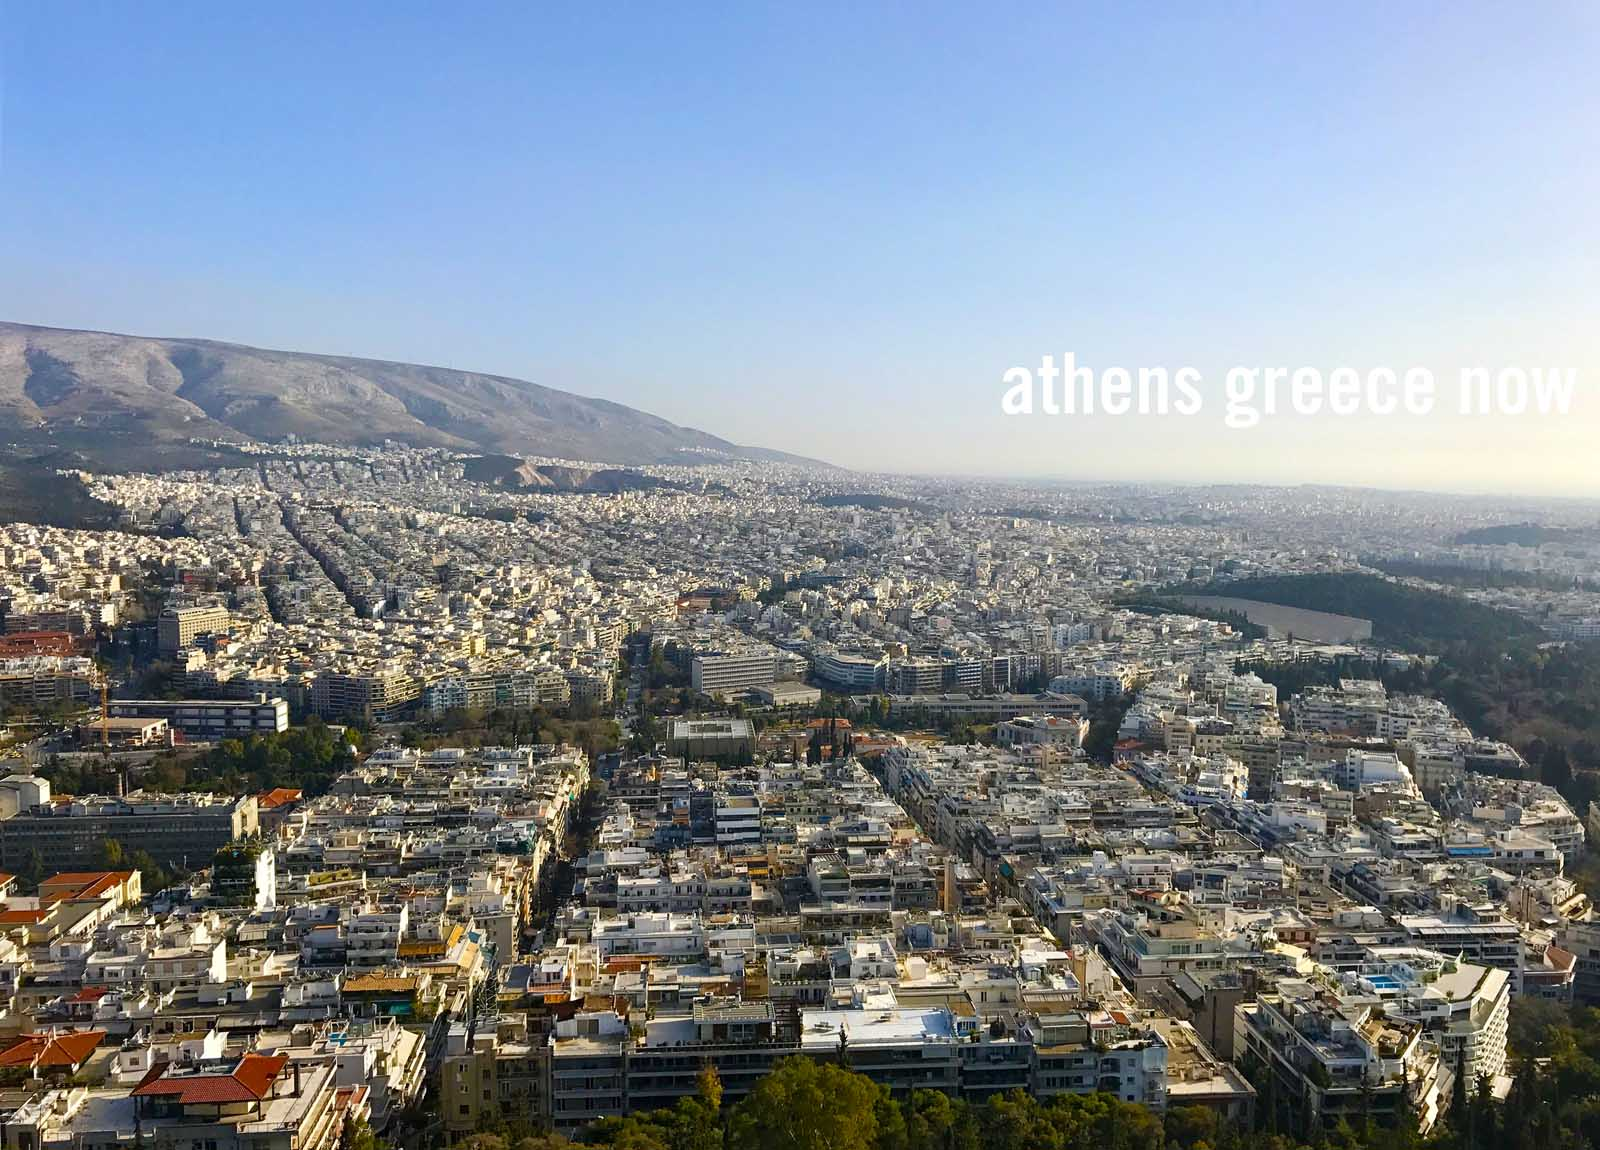 Enlarged - Athens Cityscape in Greece - viewed from Lycabettus